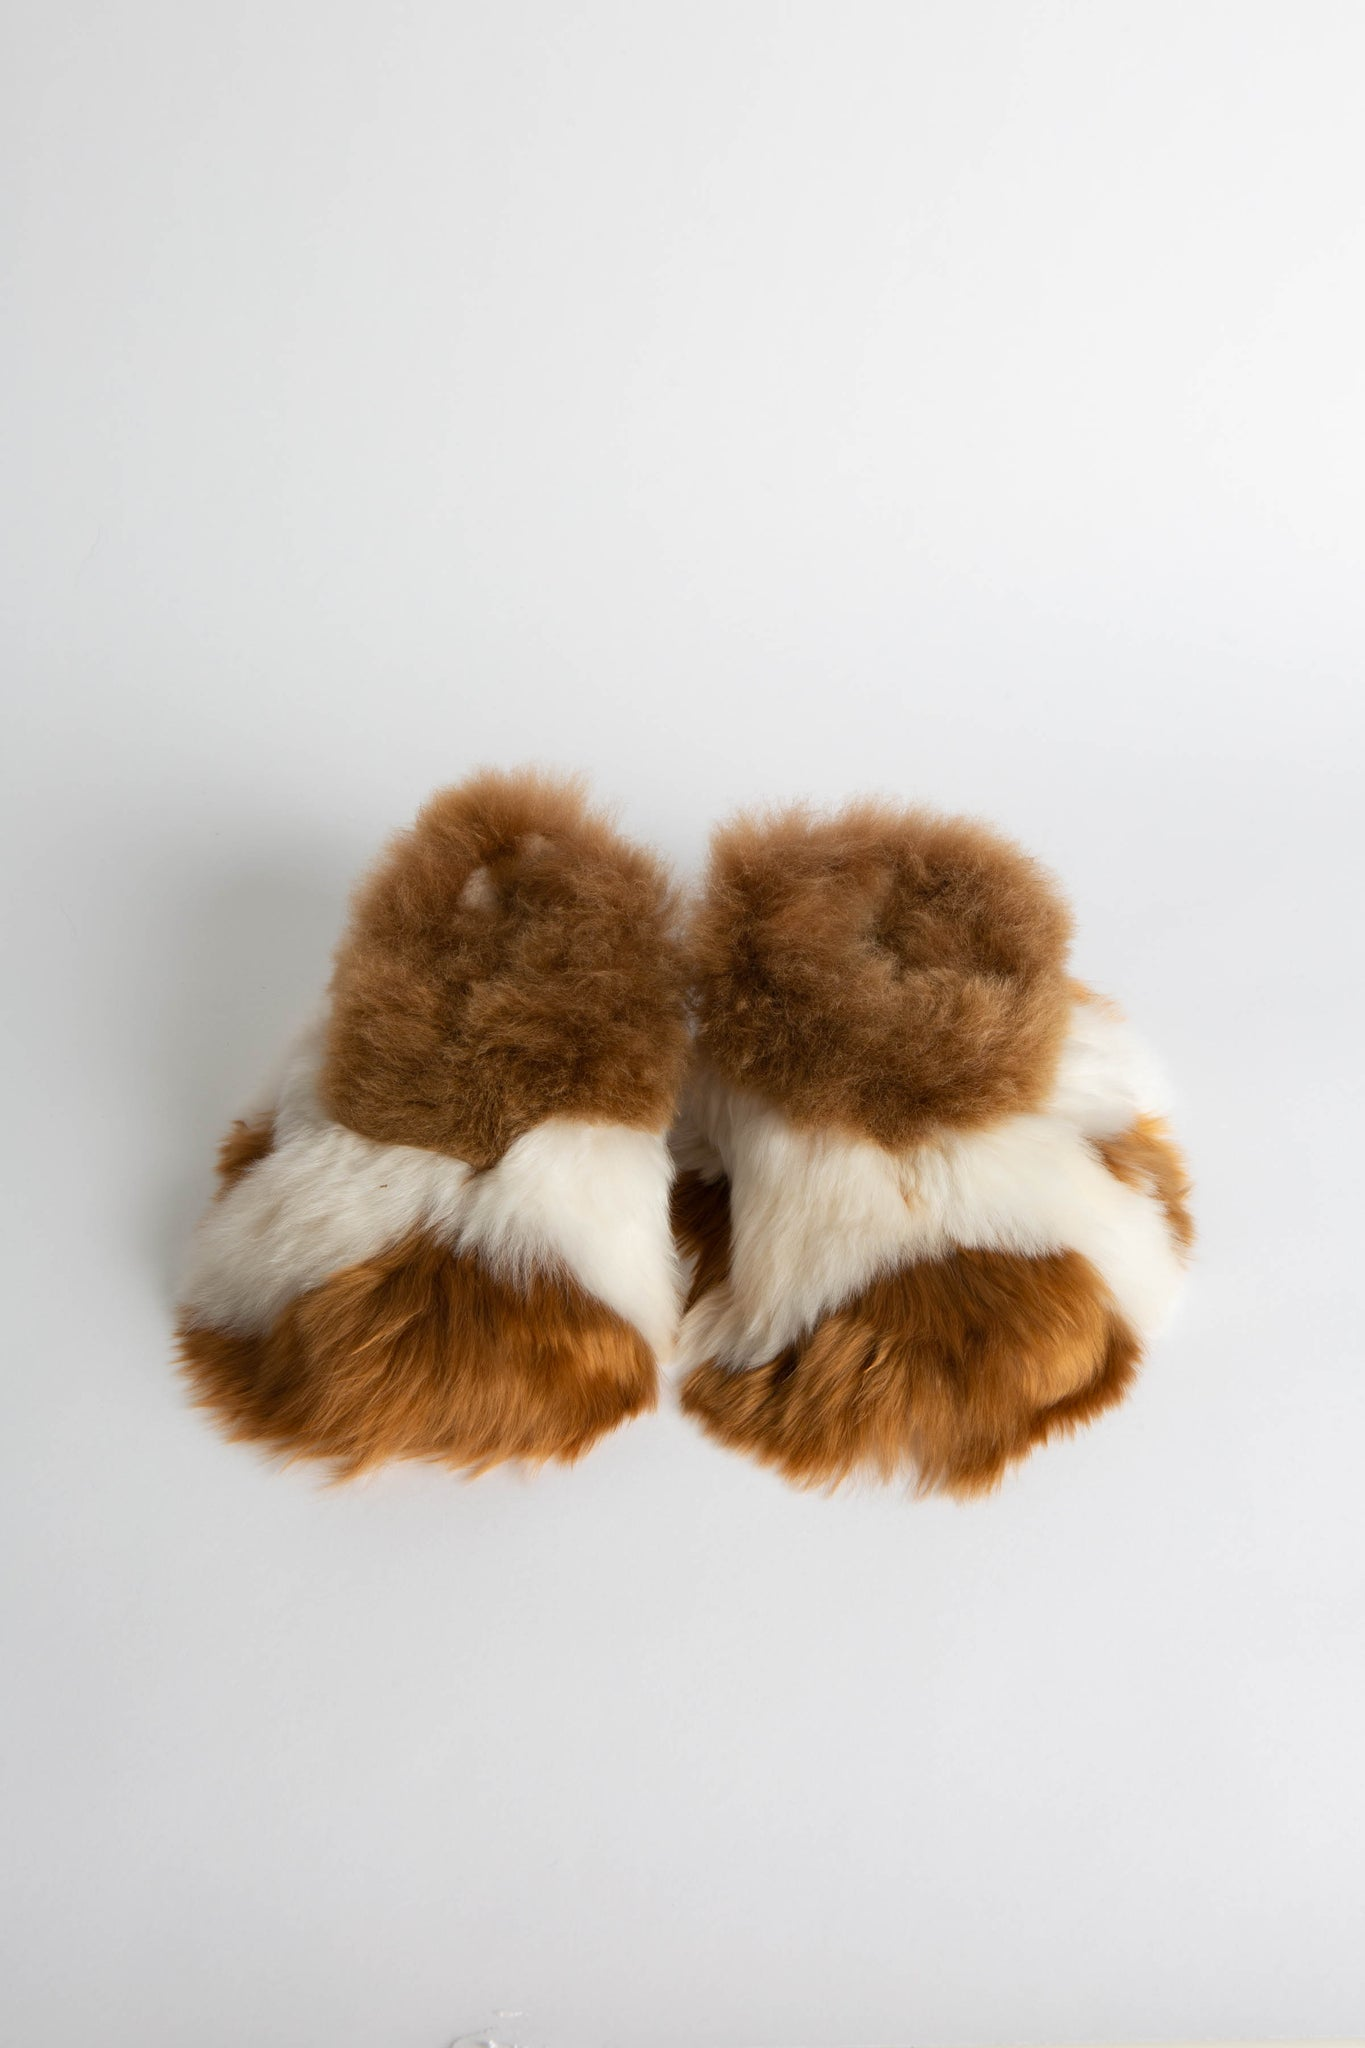 Brown & White Alpaca Slippers